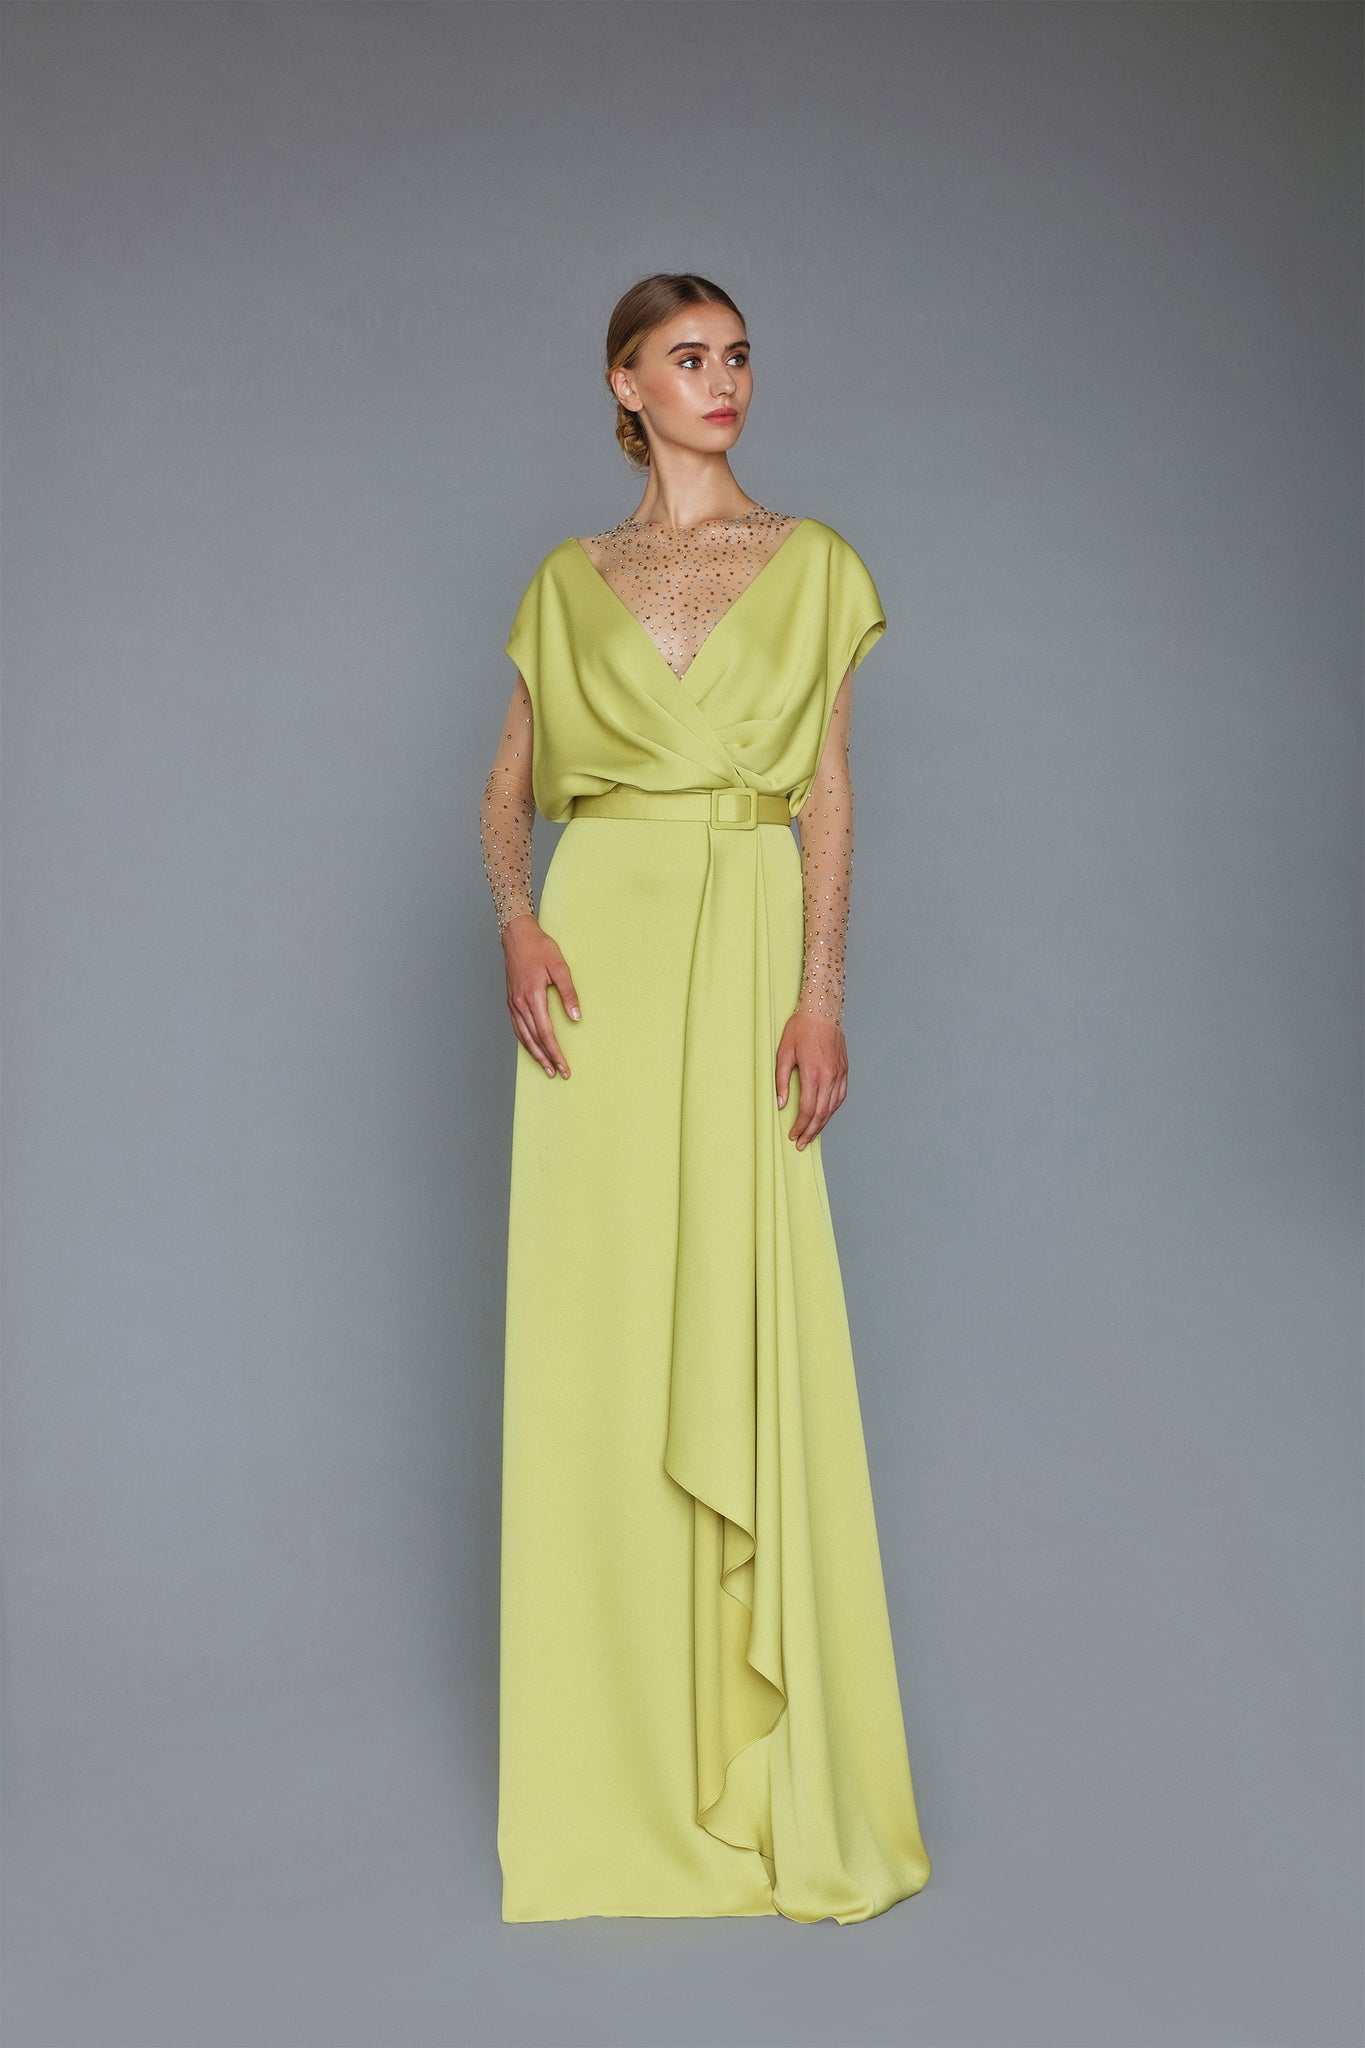 HANDMADE STONY CREPE SATIN LONG DRESS